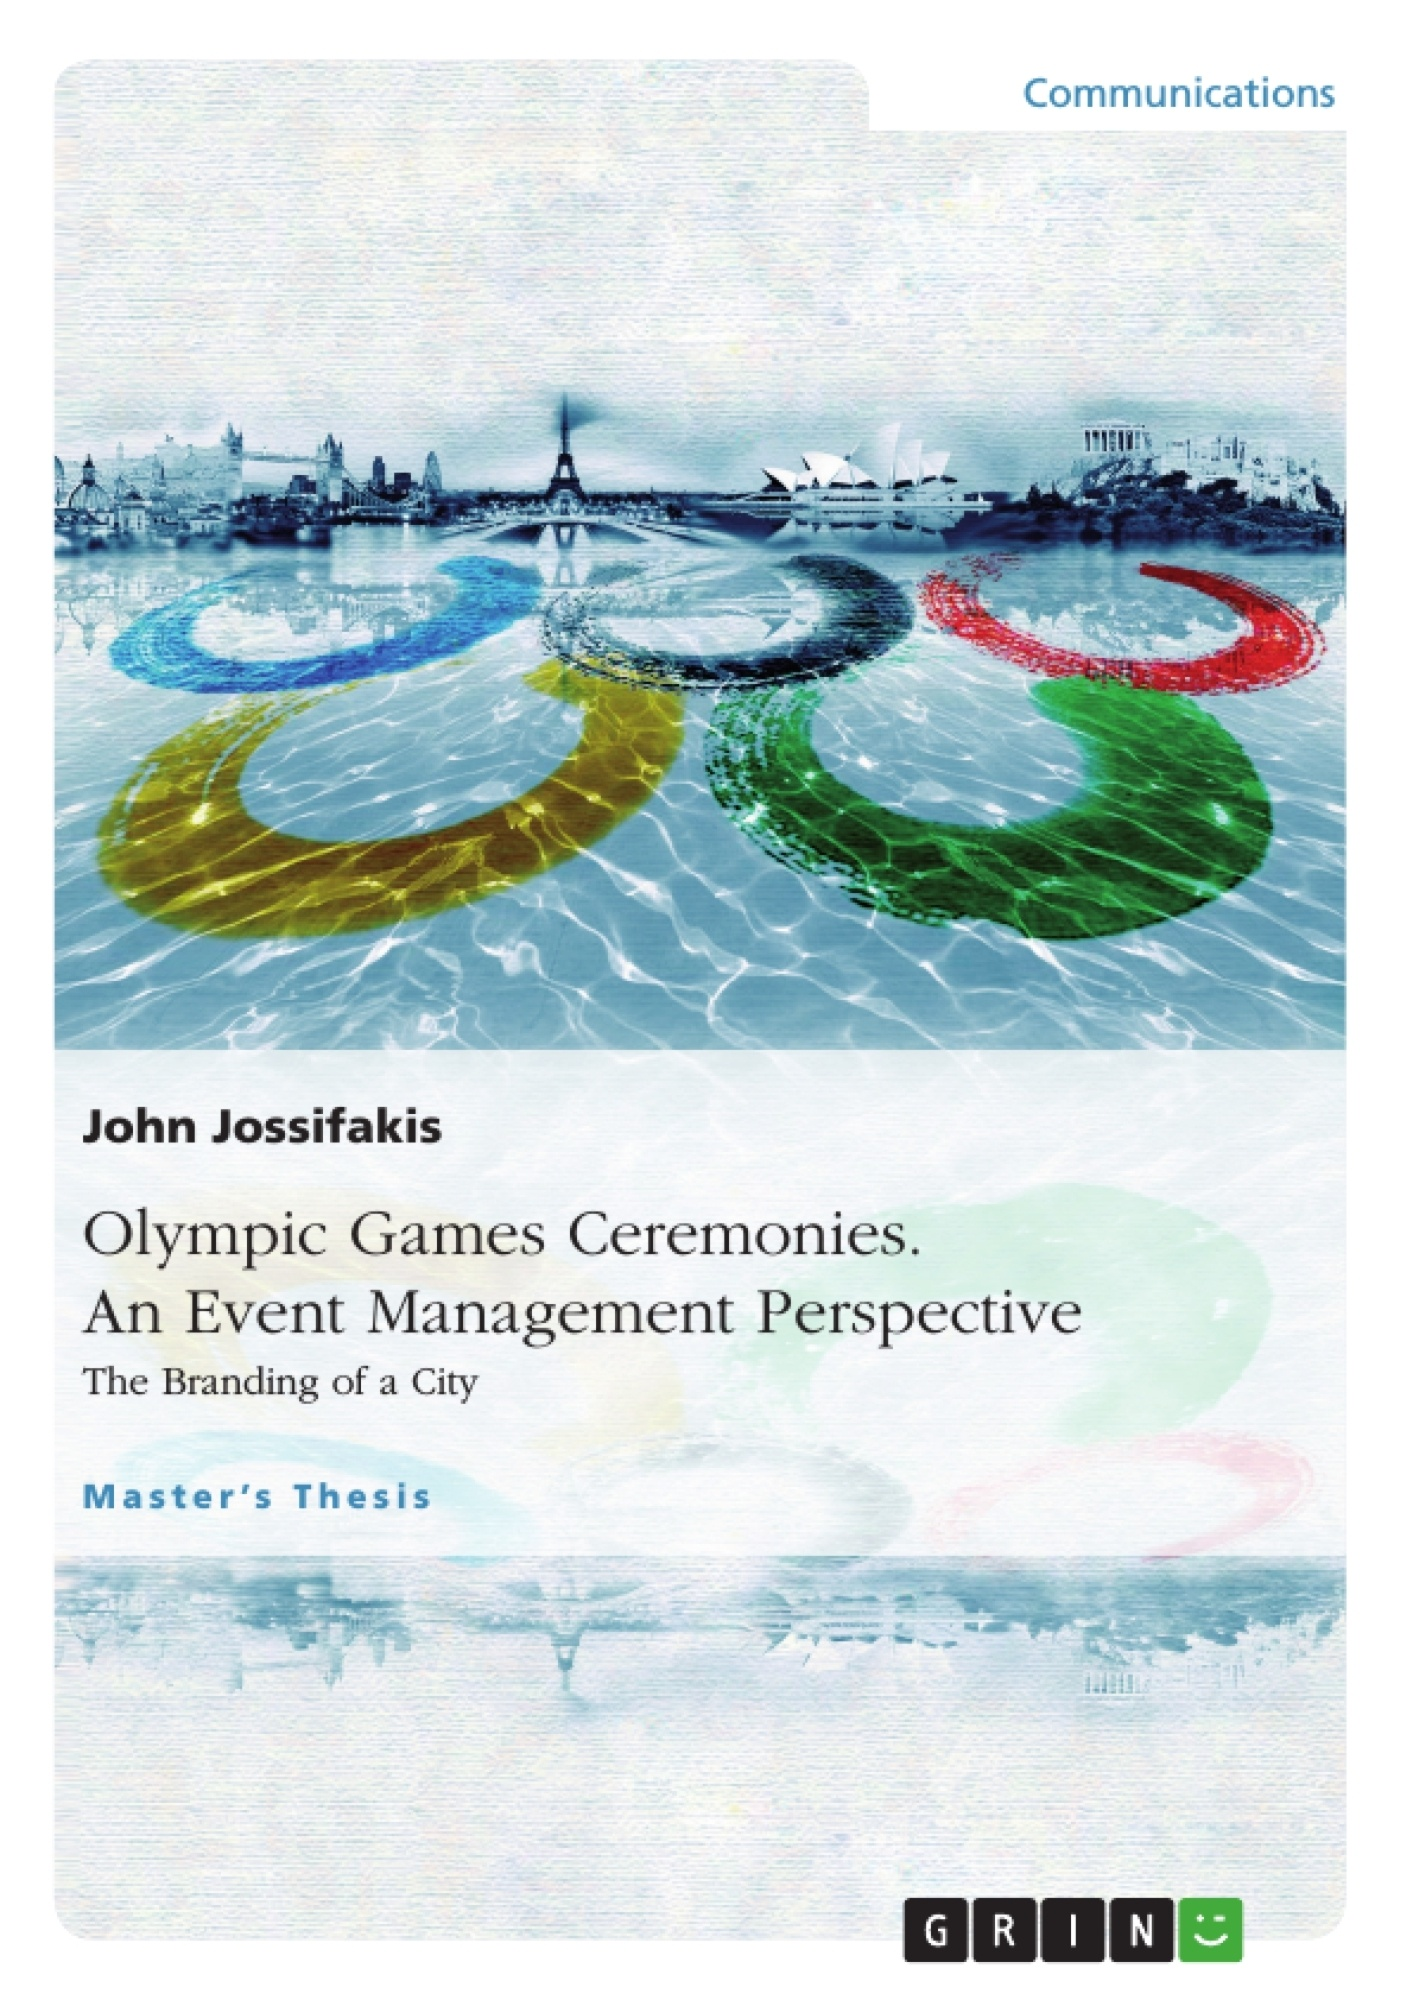 olympic games ceremonies an event management perspective upload your own papers earn money and win an iphone 7